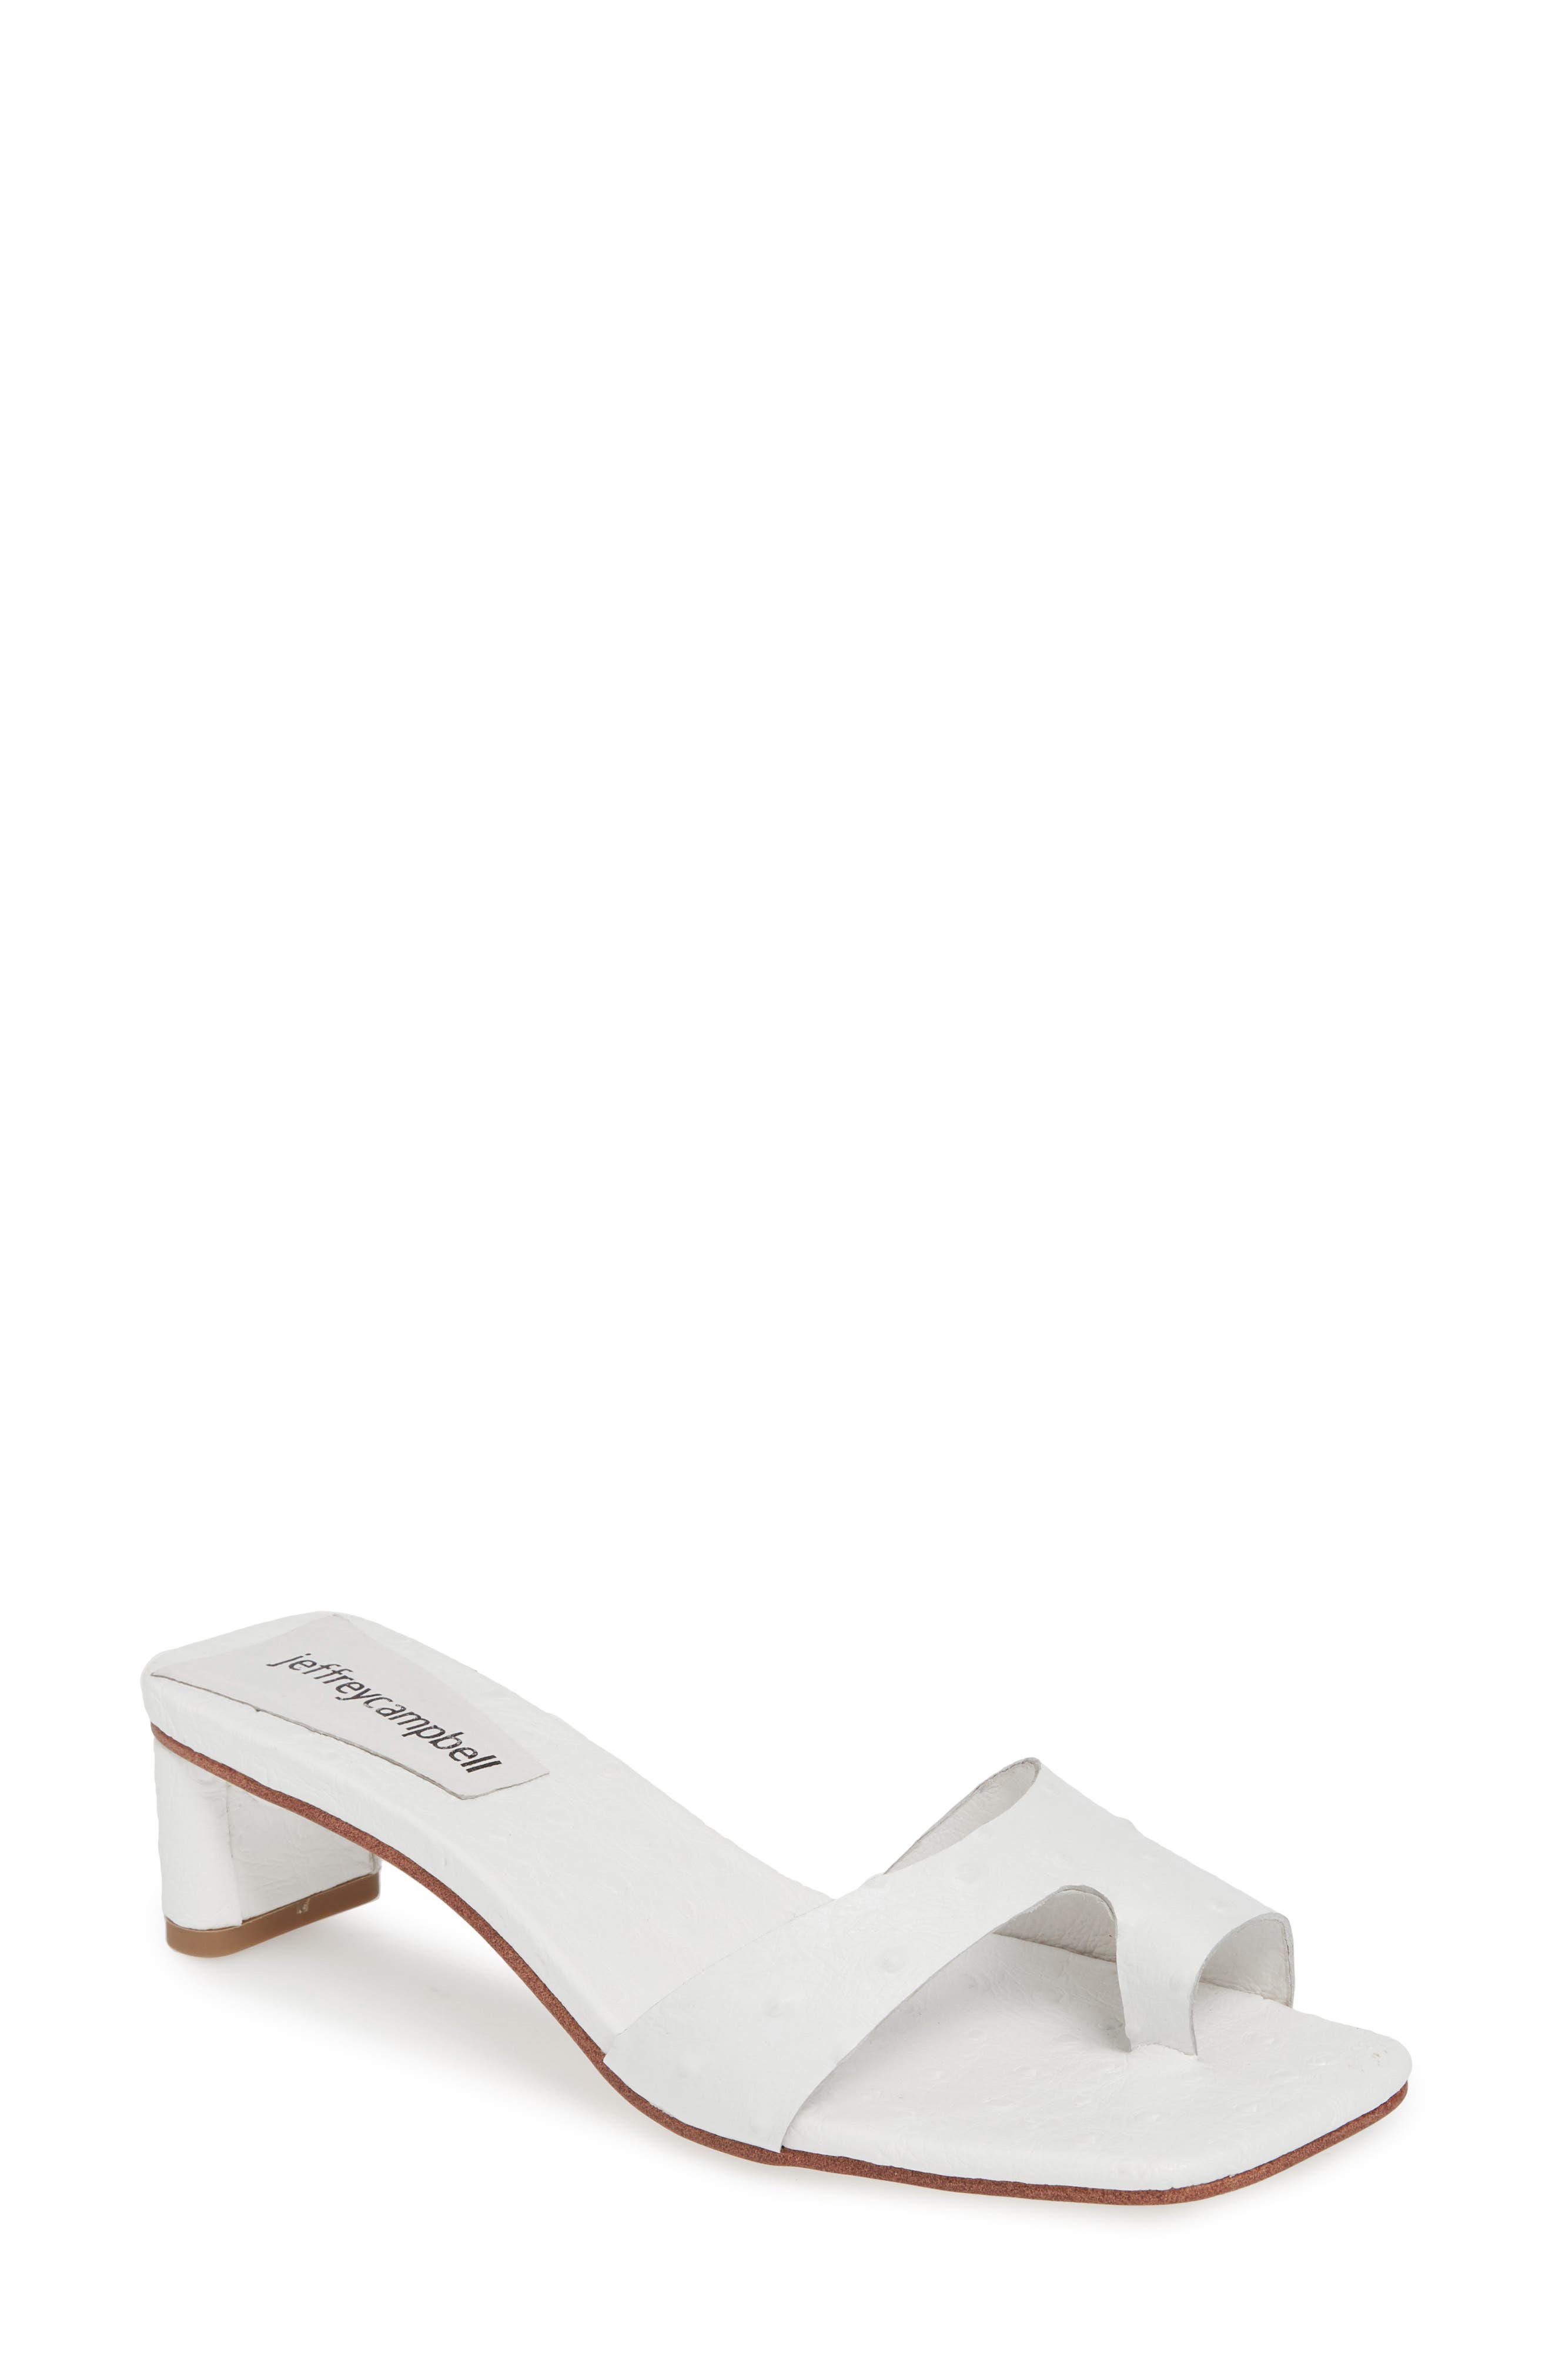 JEFFREY CAMPBELL Teclado Slide Sandal, Main, color, 121